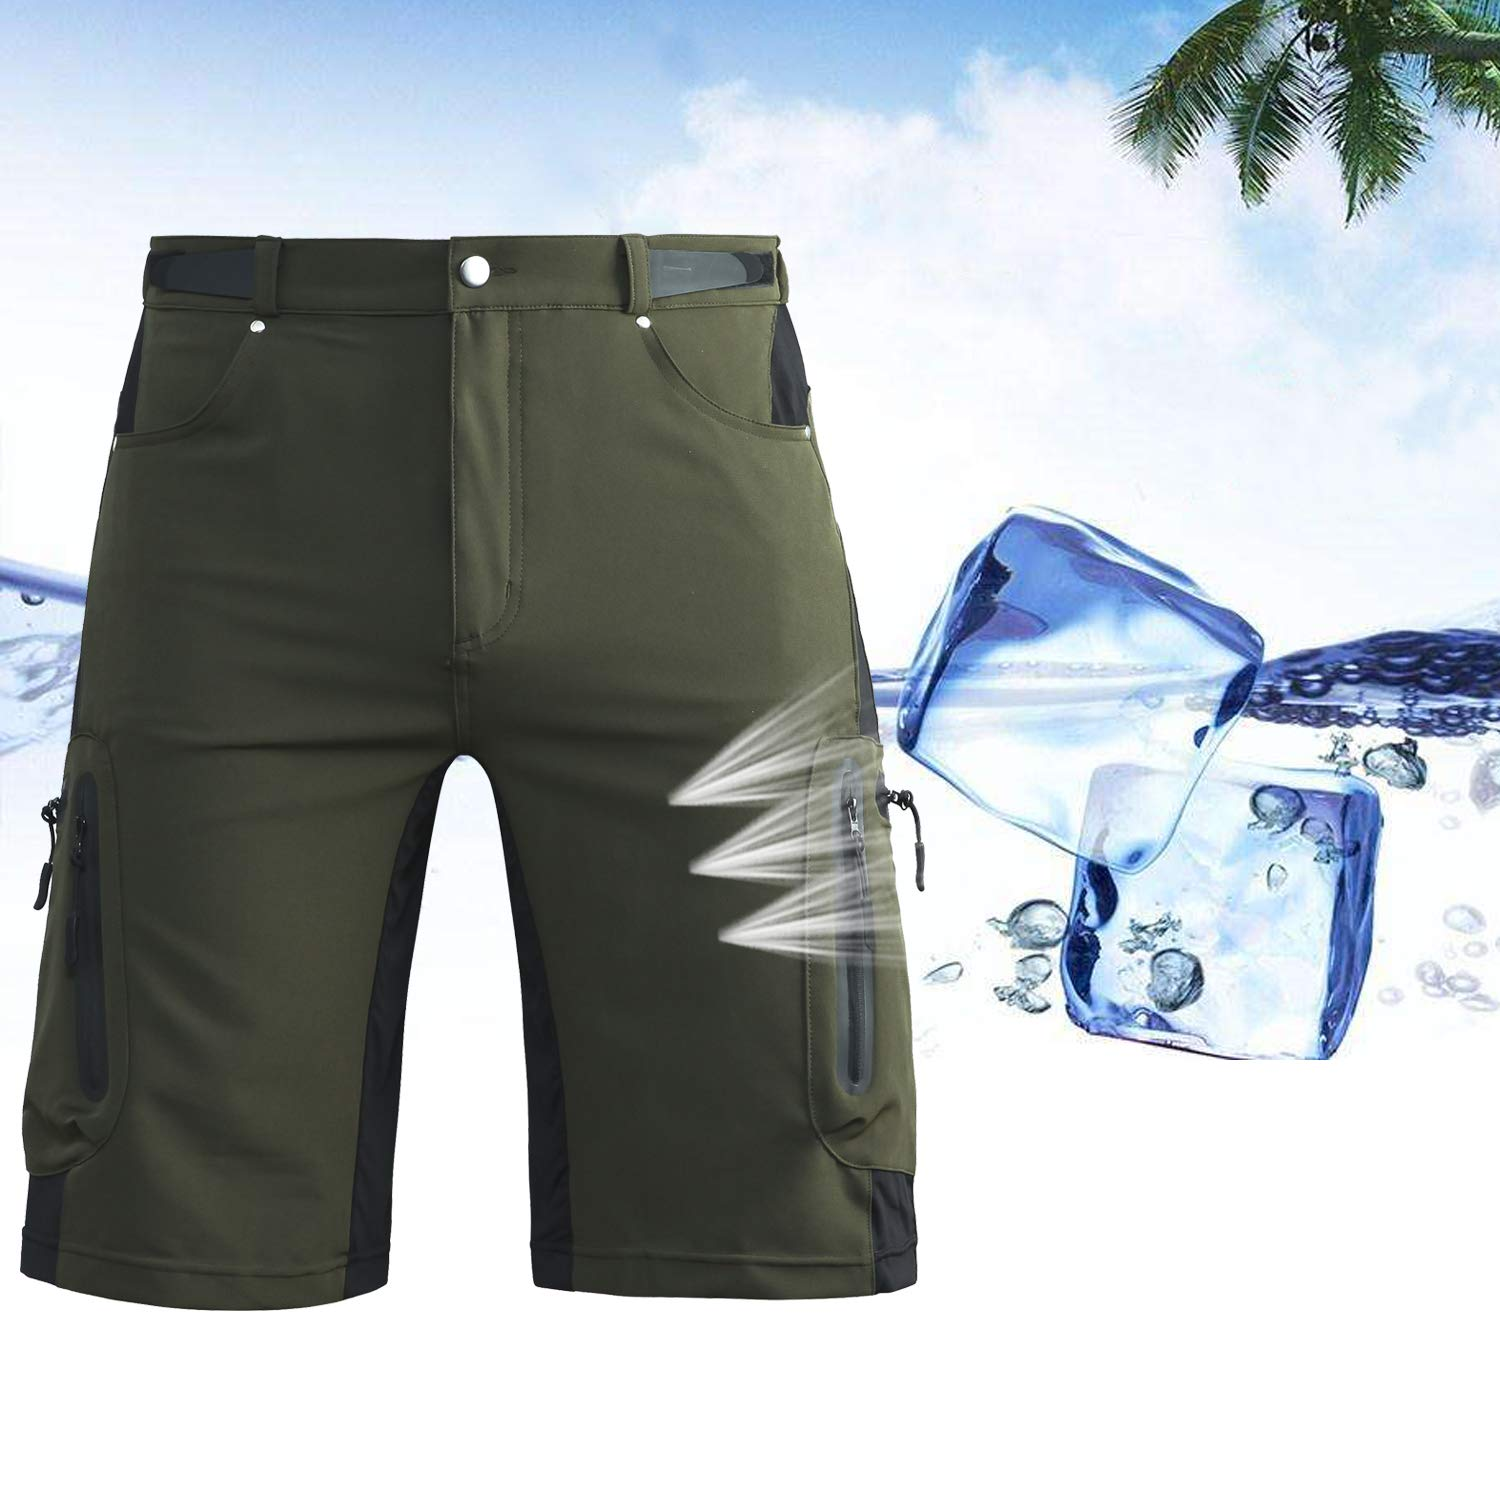 Ally Mountain Bike Shorts With Padding